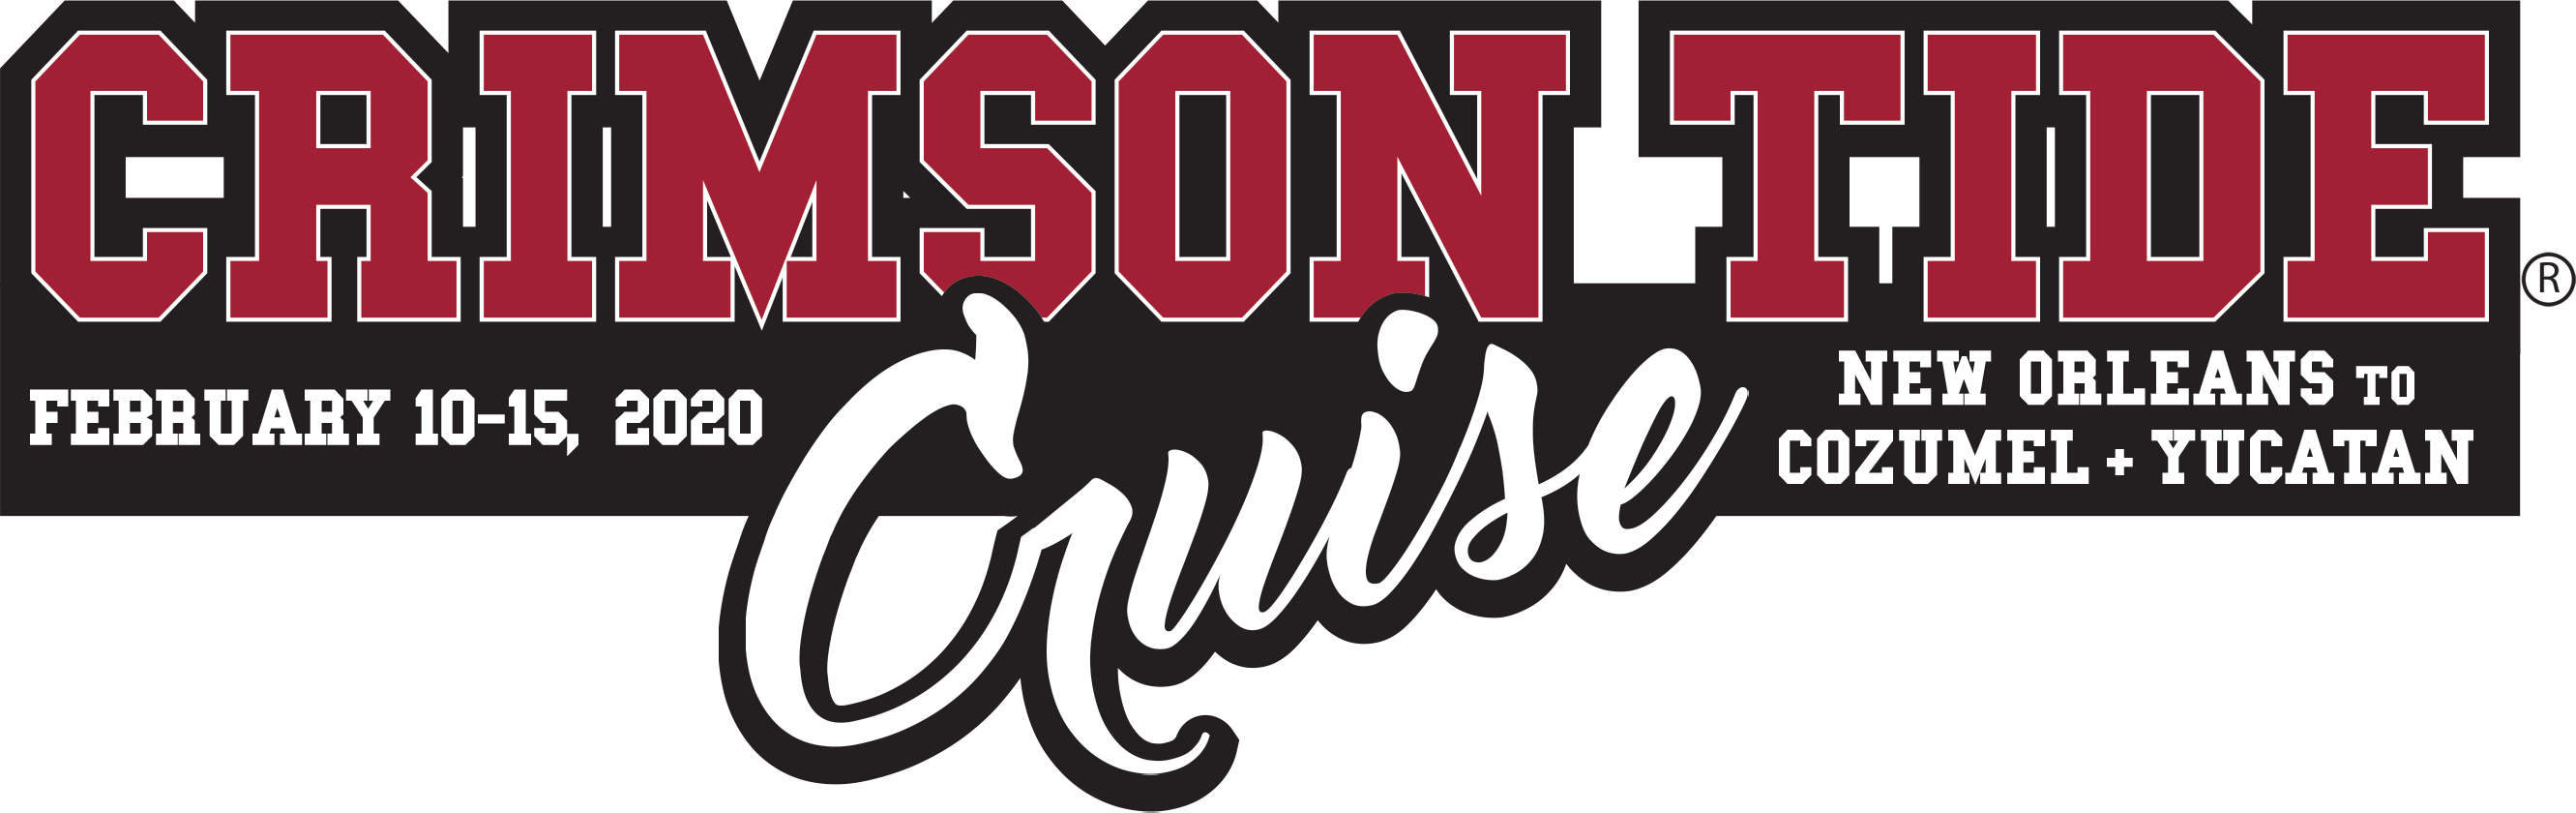 Crimson Tide Cruise | CTC PHOTO CONTEST RULES